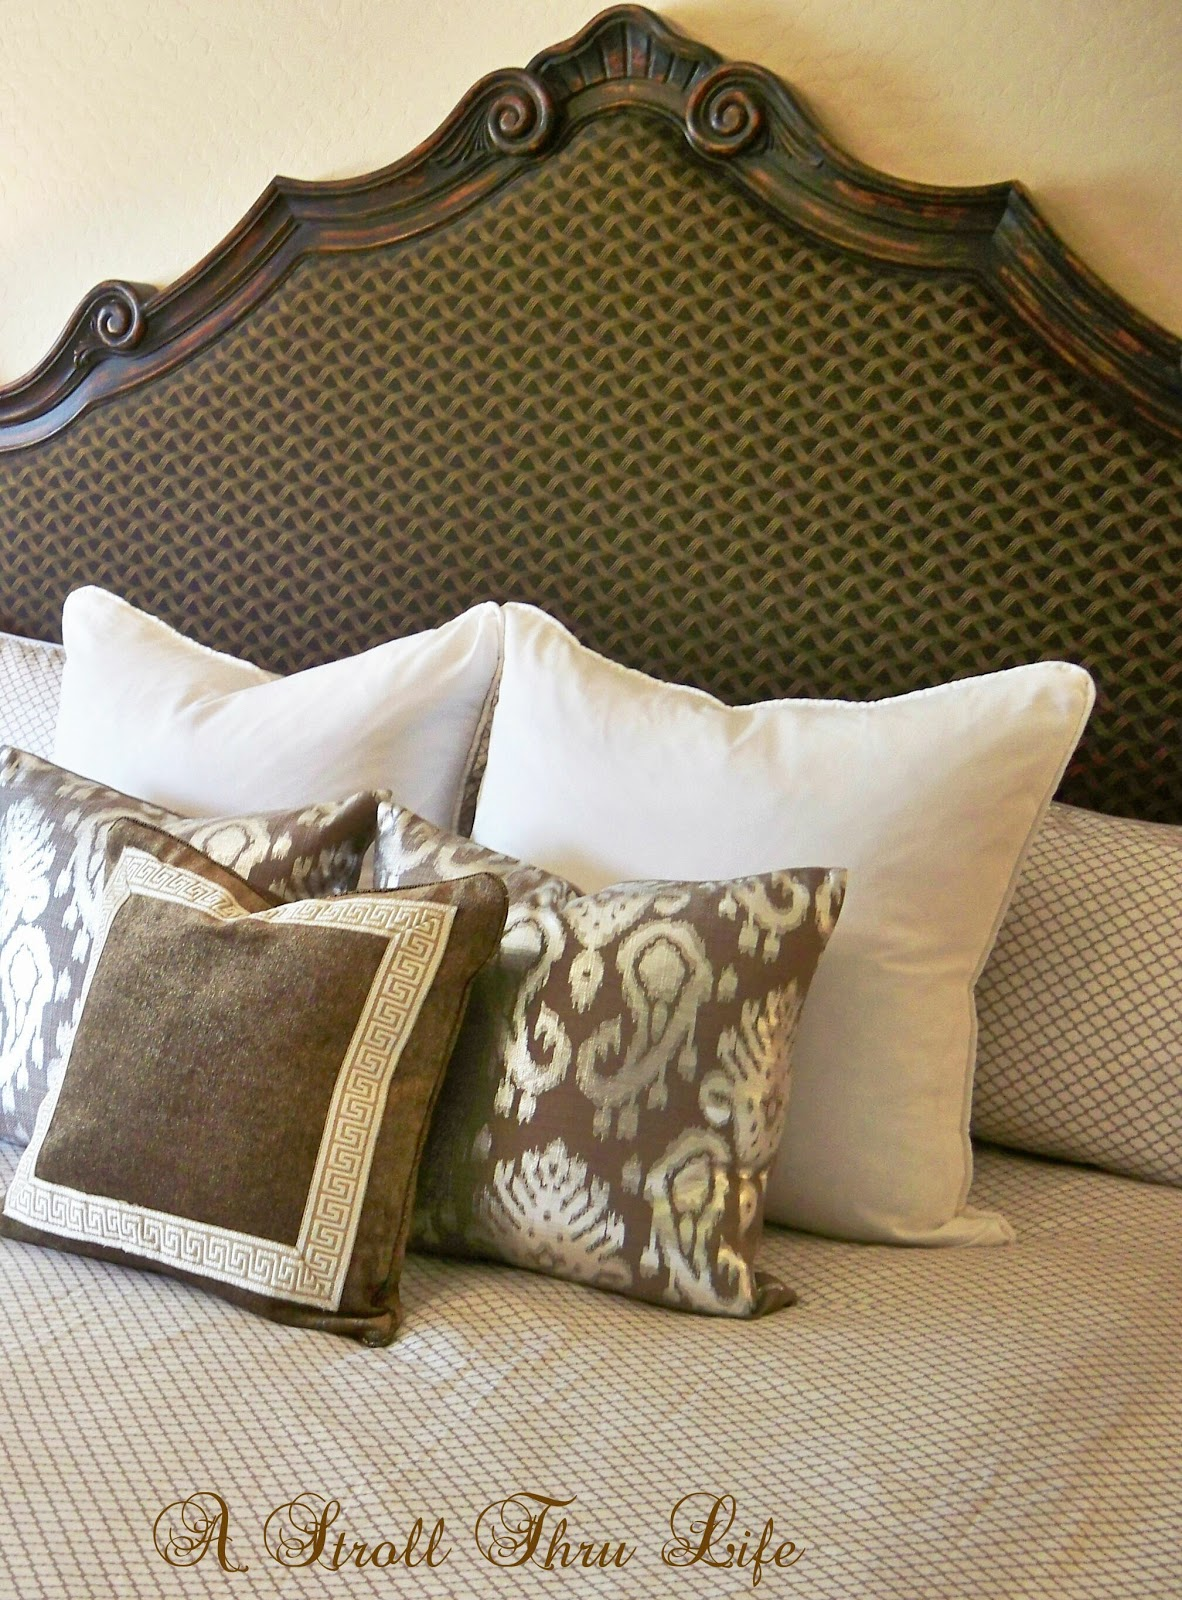 Spectacular If you are looking for new bedding be sure to check them out Impeccable quality and beautiful patterns and colors